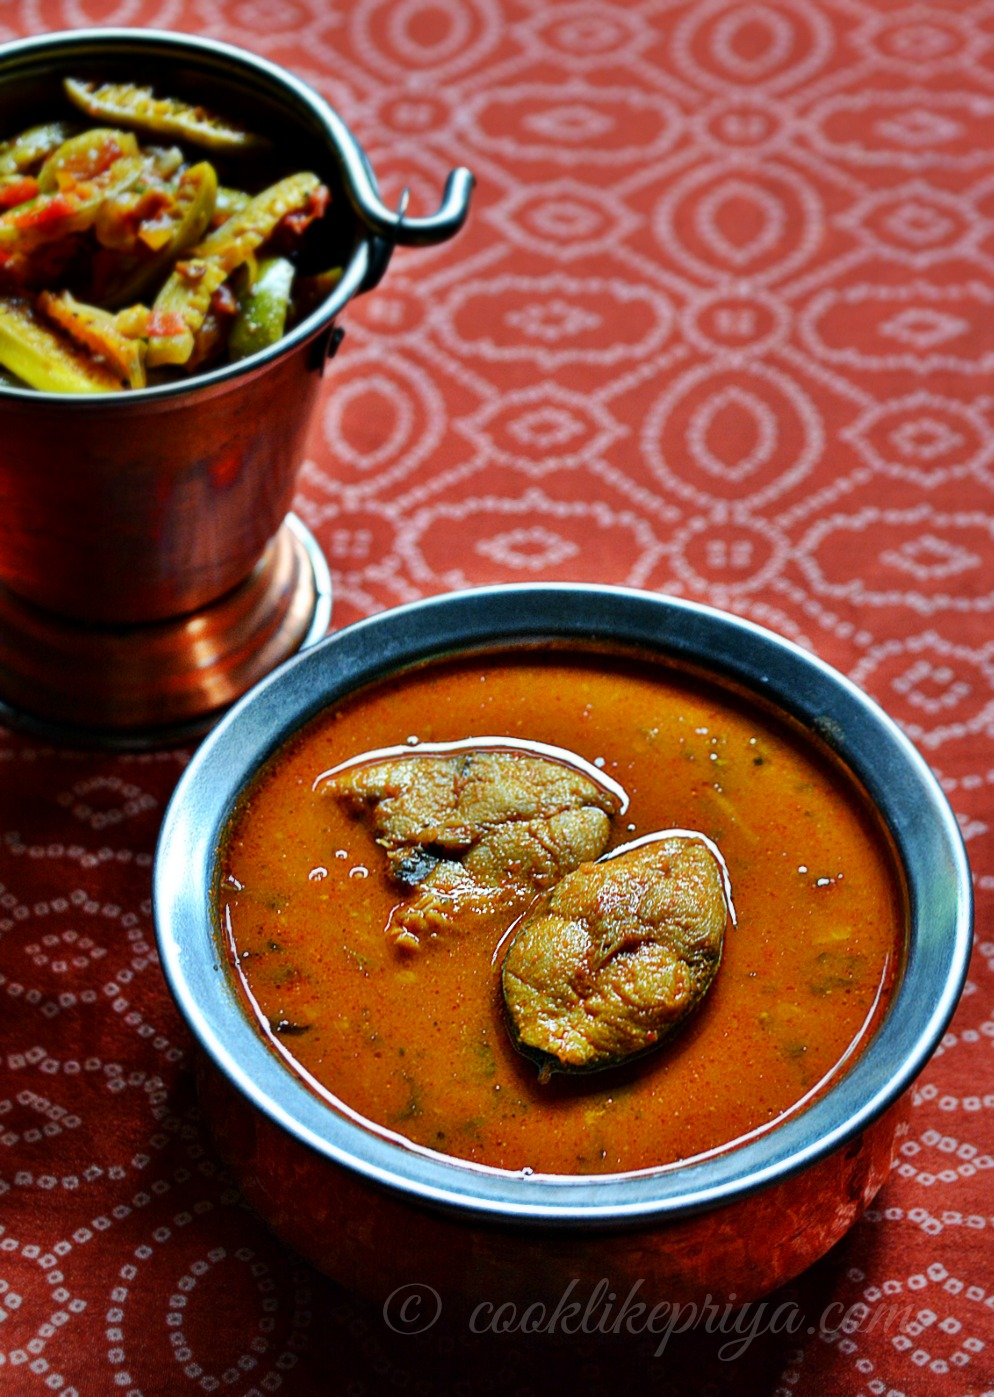 Amma's Qick & Easy South Indian fish curry